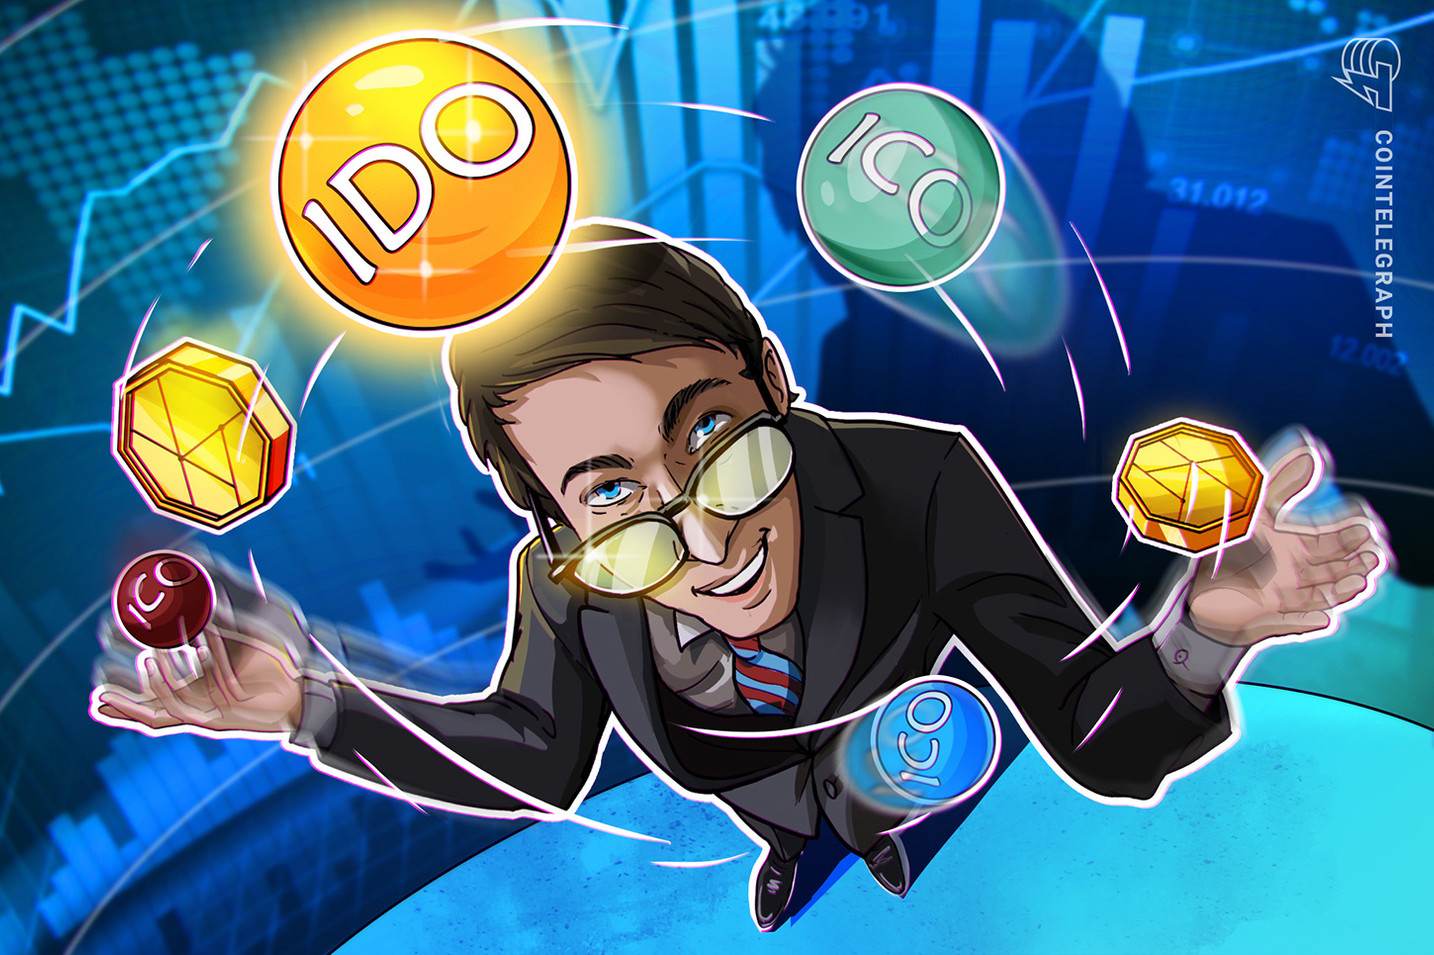 To ICO or to IDO? That is the question